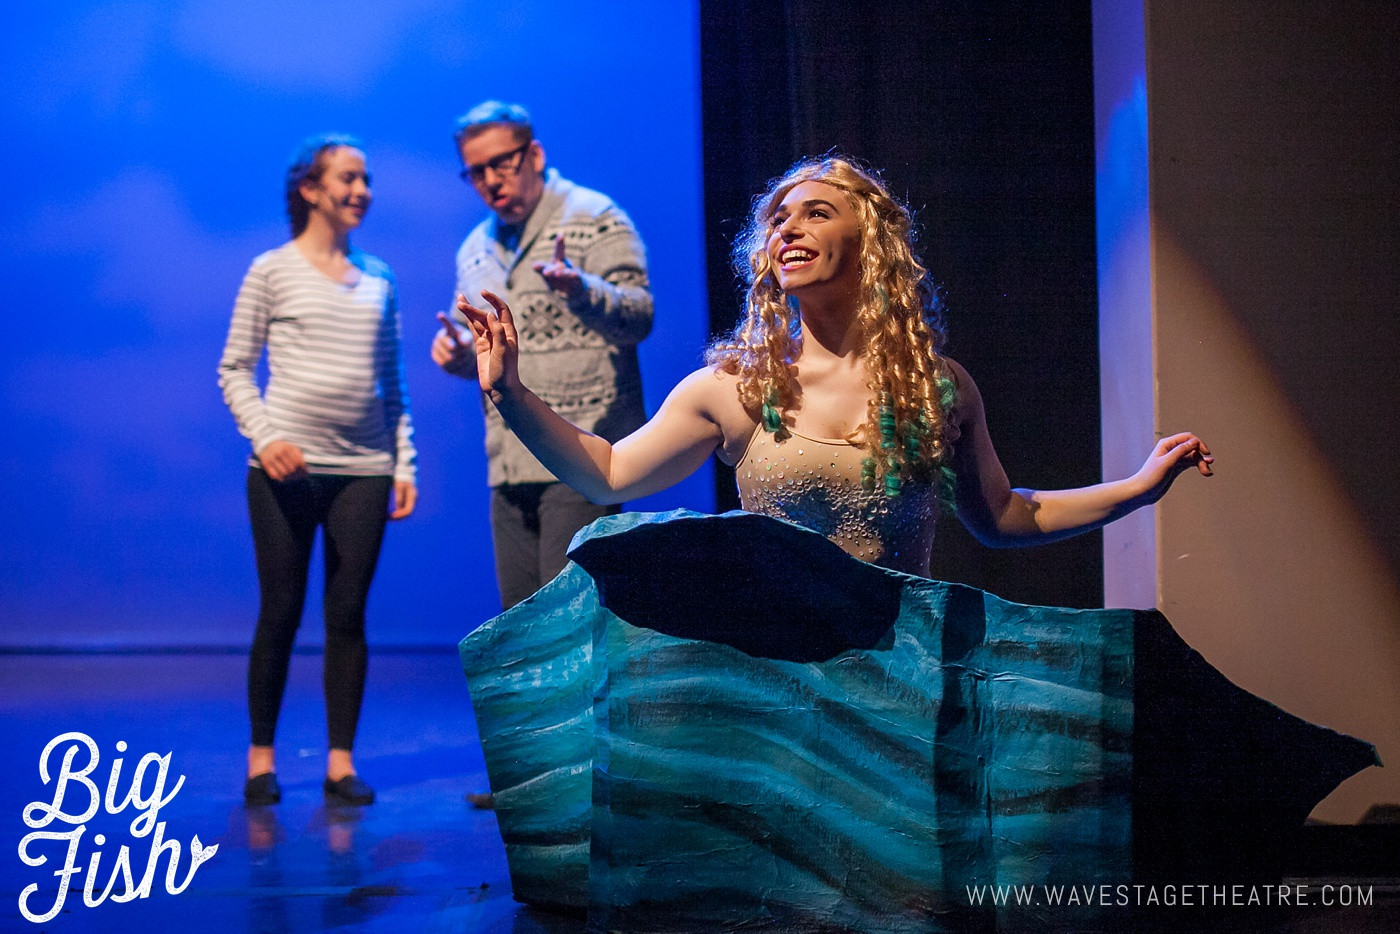 big-fish-newmarket-theatre-toronto-wavestage_0017.jpg